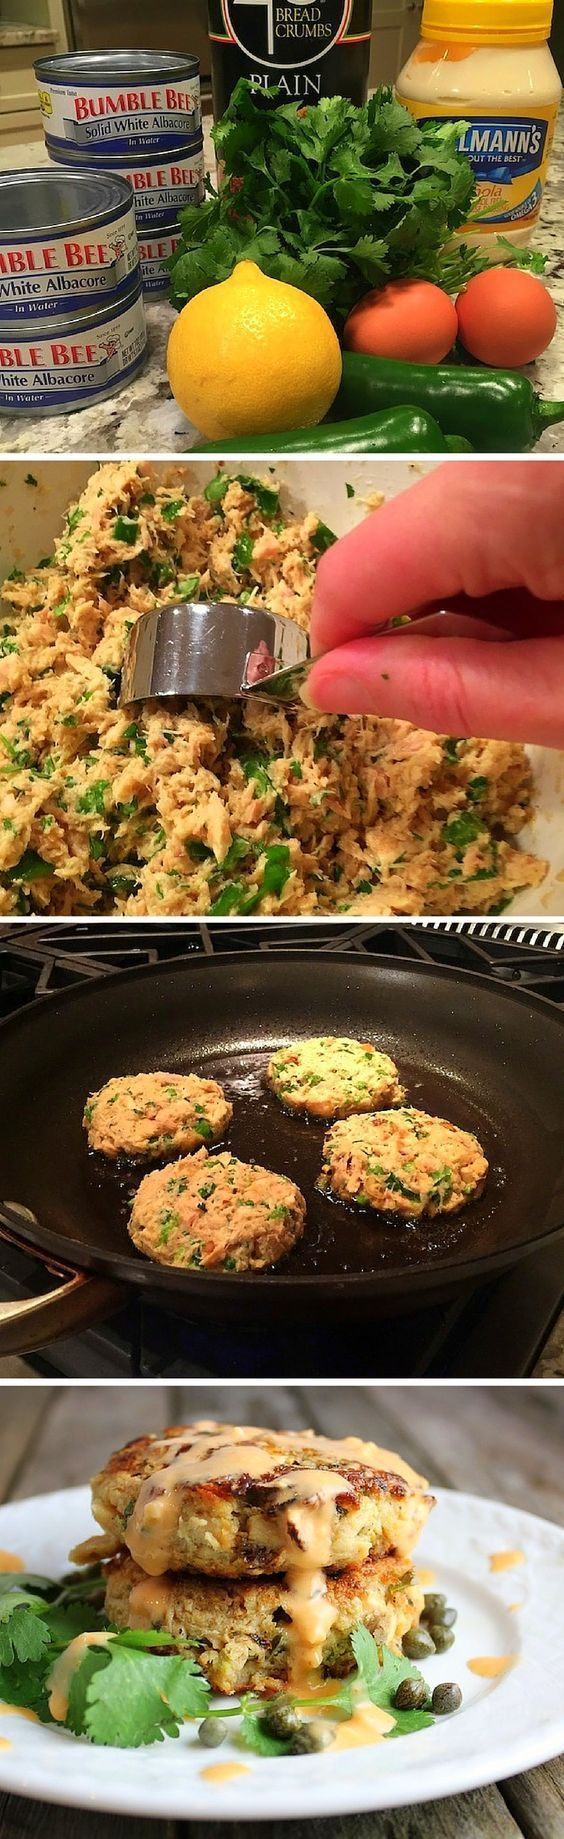 These simple healthy tuna cakes are delicious, budget friendly, and they feed an army! Low carb, low calorie, & clean eating. #cannedtuna http://tasteandsee.com